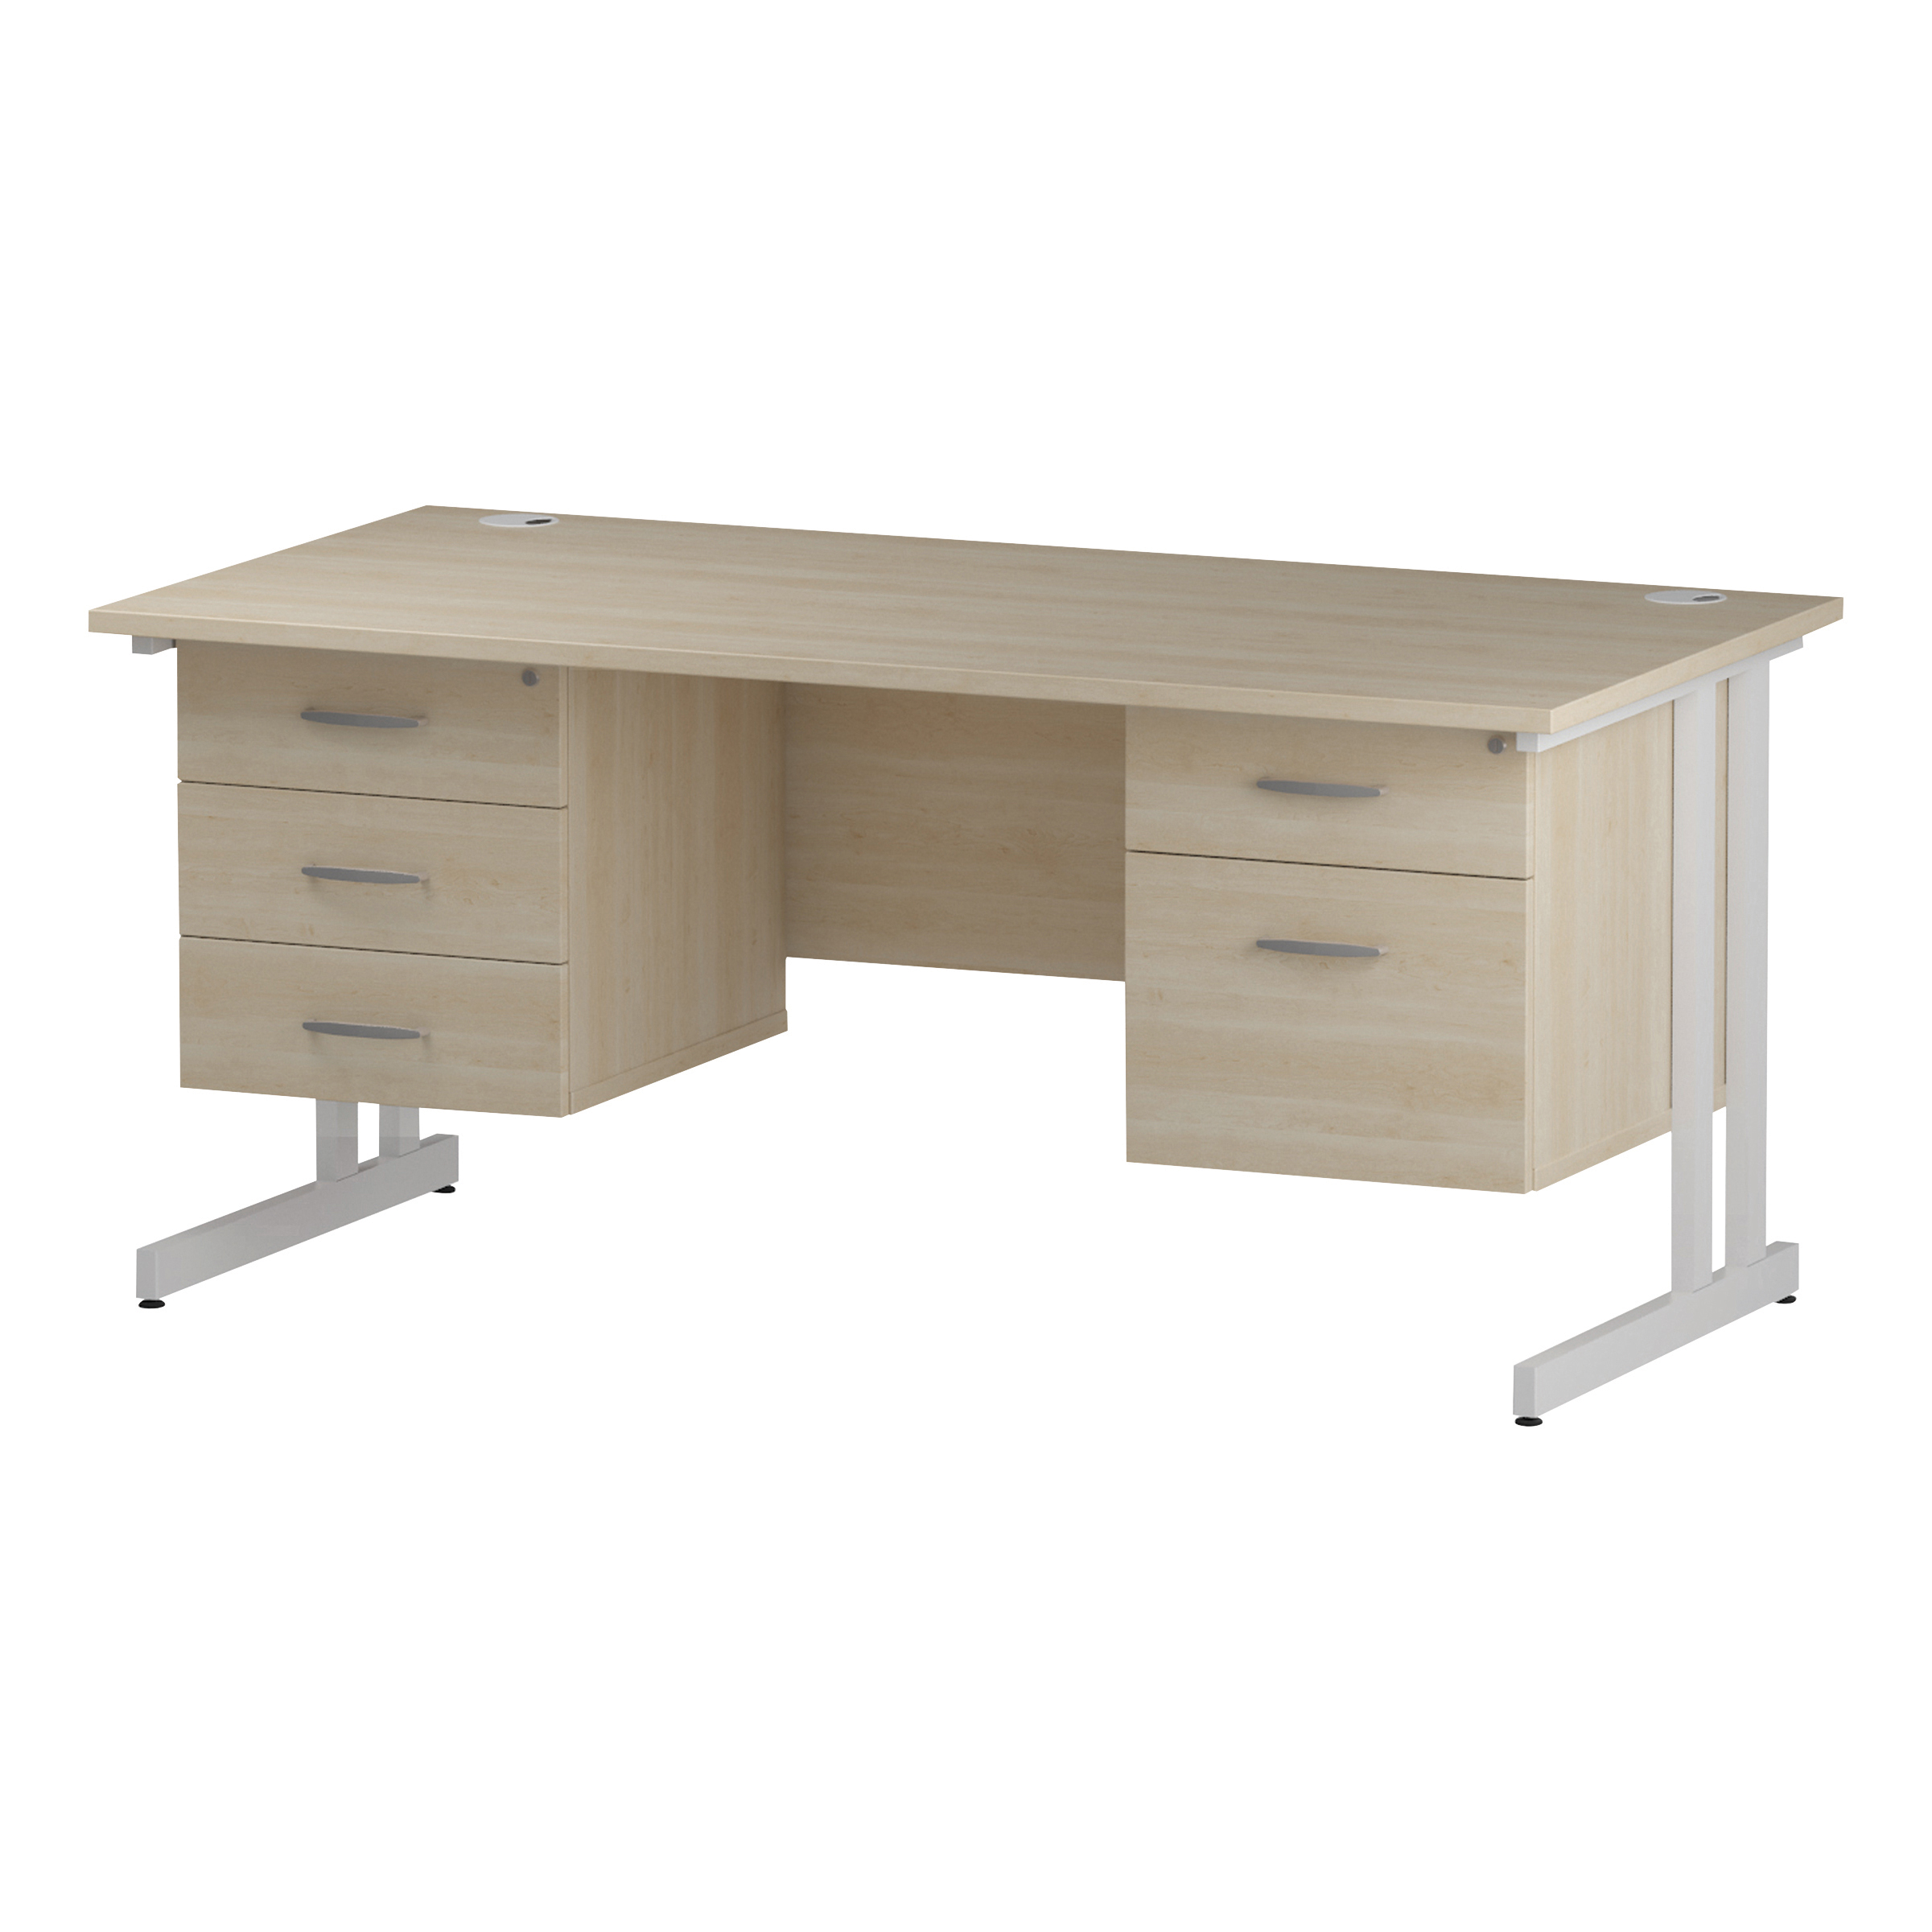 Trexus Rectangular Desk White Cantilever Leg 1600x800mm Double Fixed Ped 2&3 Drawers Maple Ref I002469